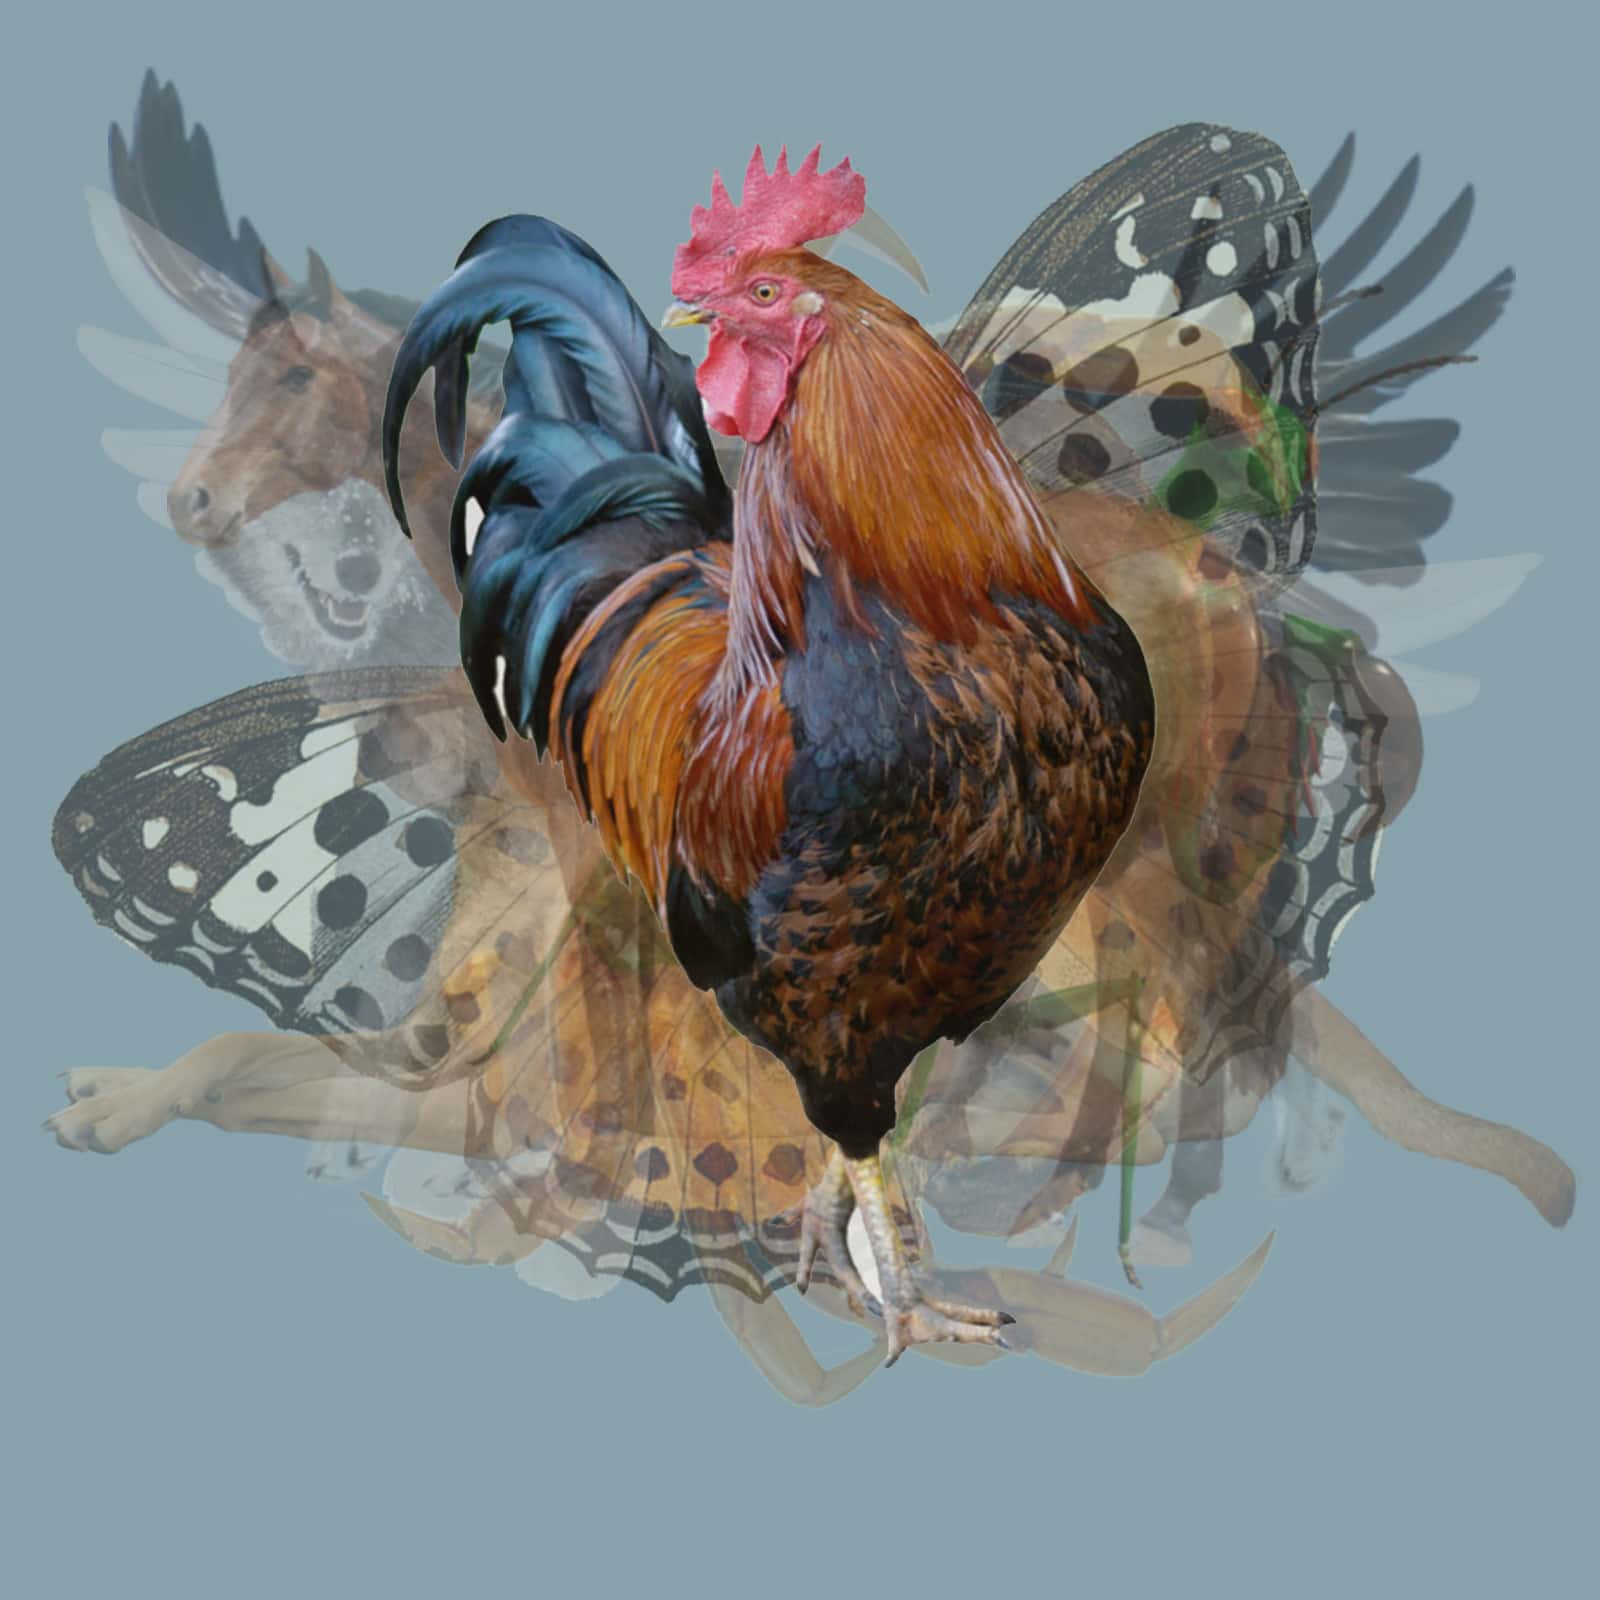 what animal rooster